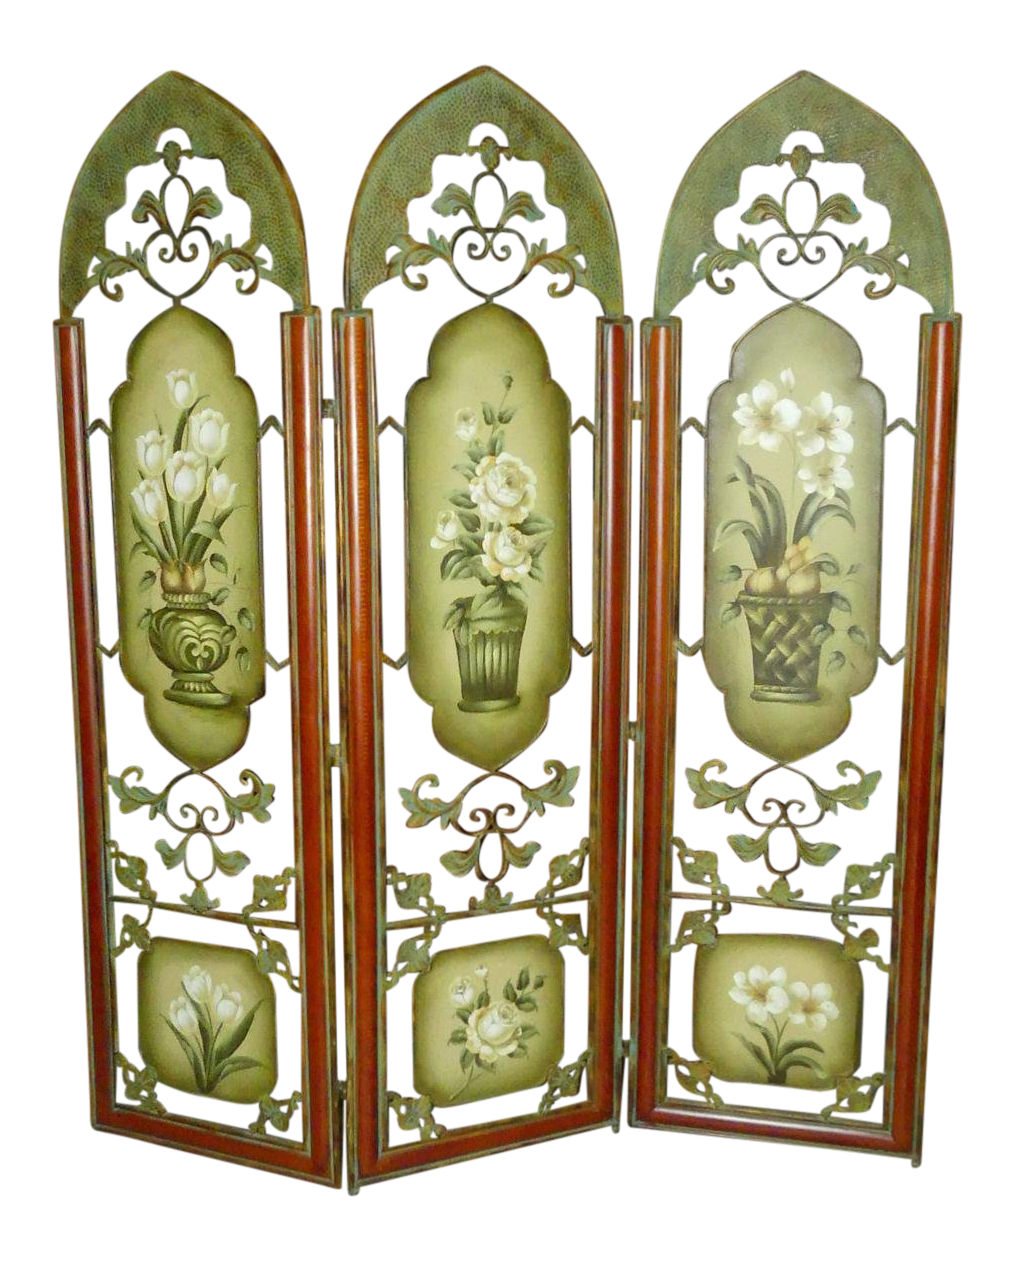 60-Inch Painted Metal Floor Screen or Room Divider  Perfect size for a queen size headboard